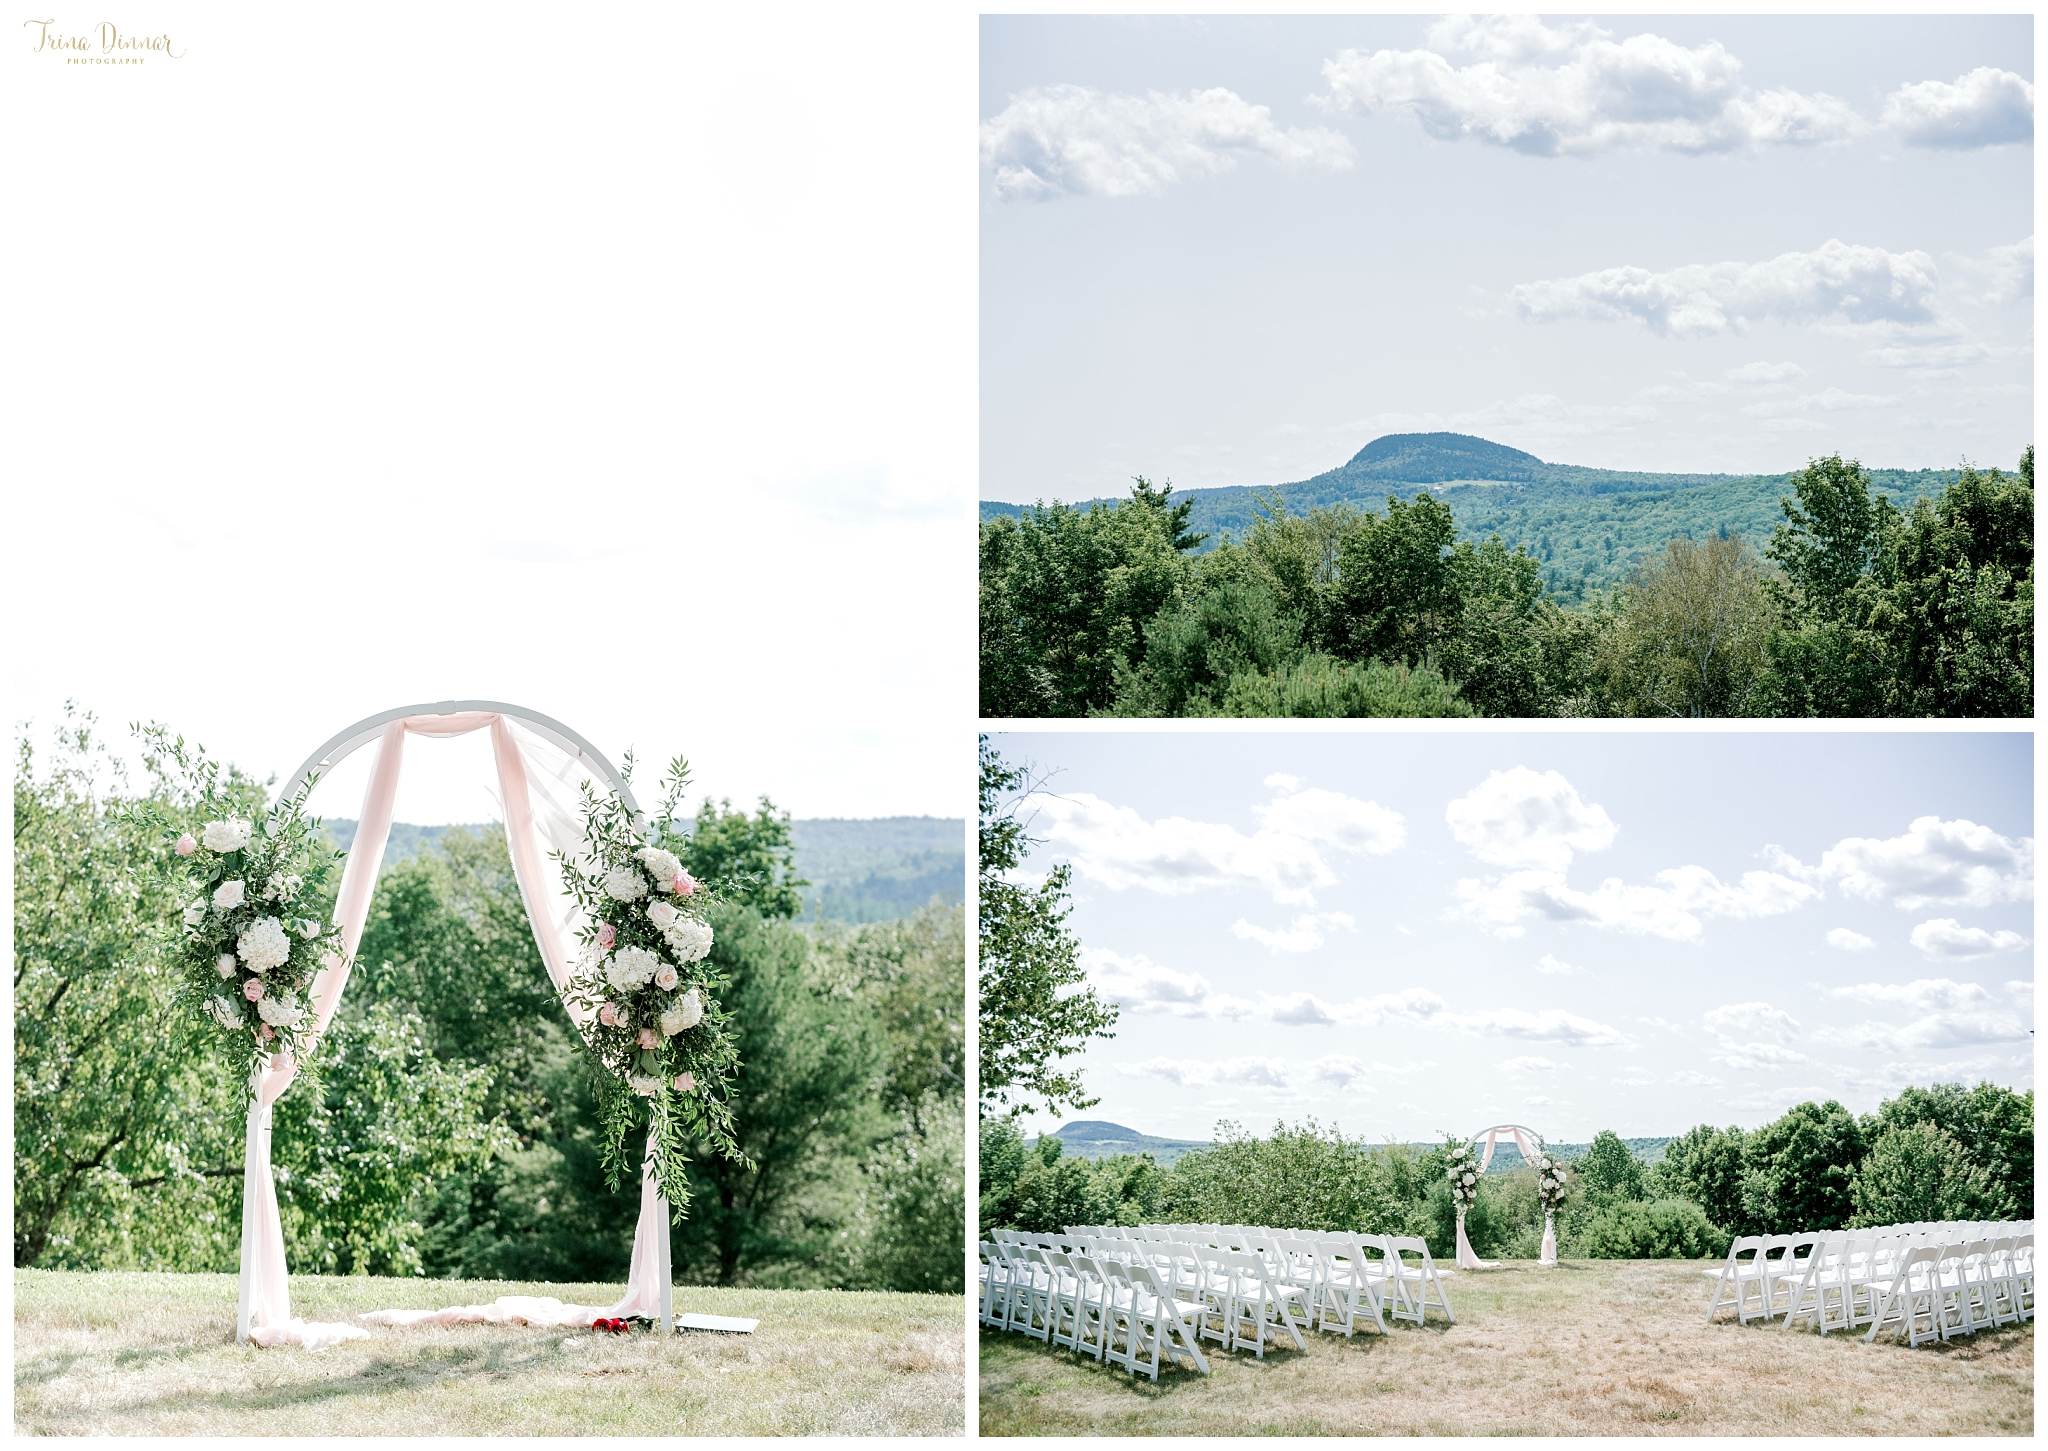 Dedham Maine Wedding Ceremony at The Lucerne Inn overlooking Bald Mountain